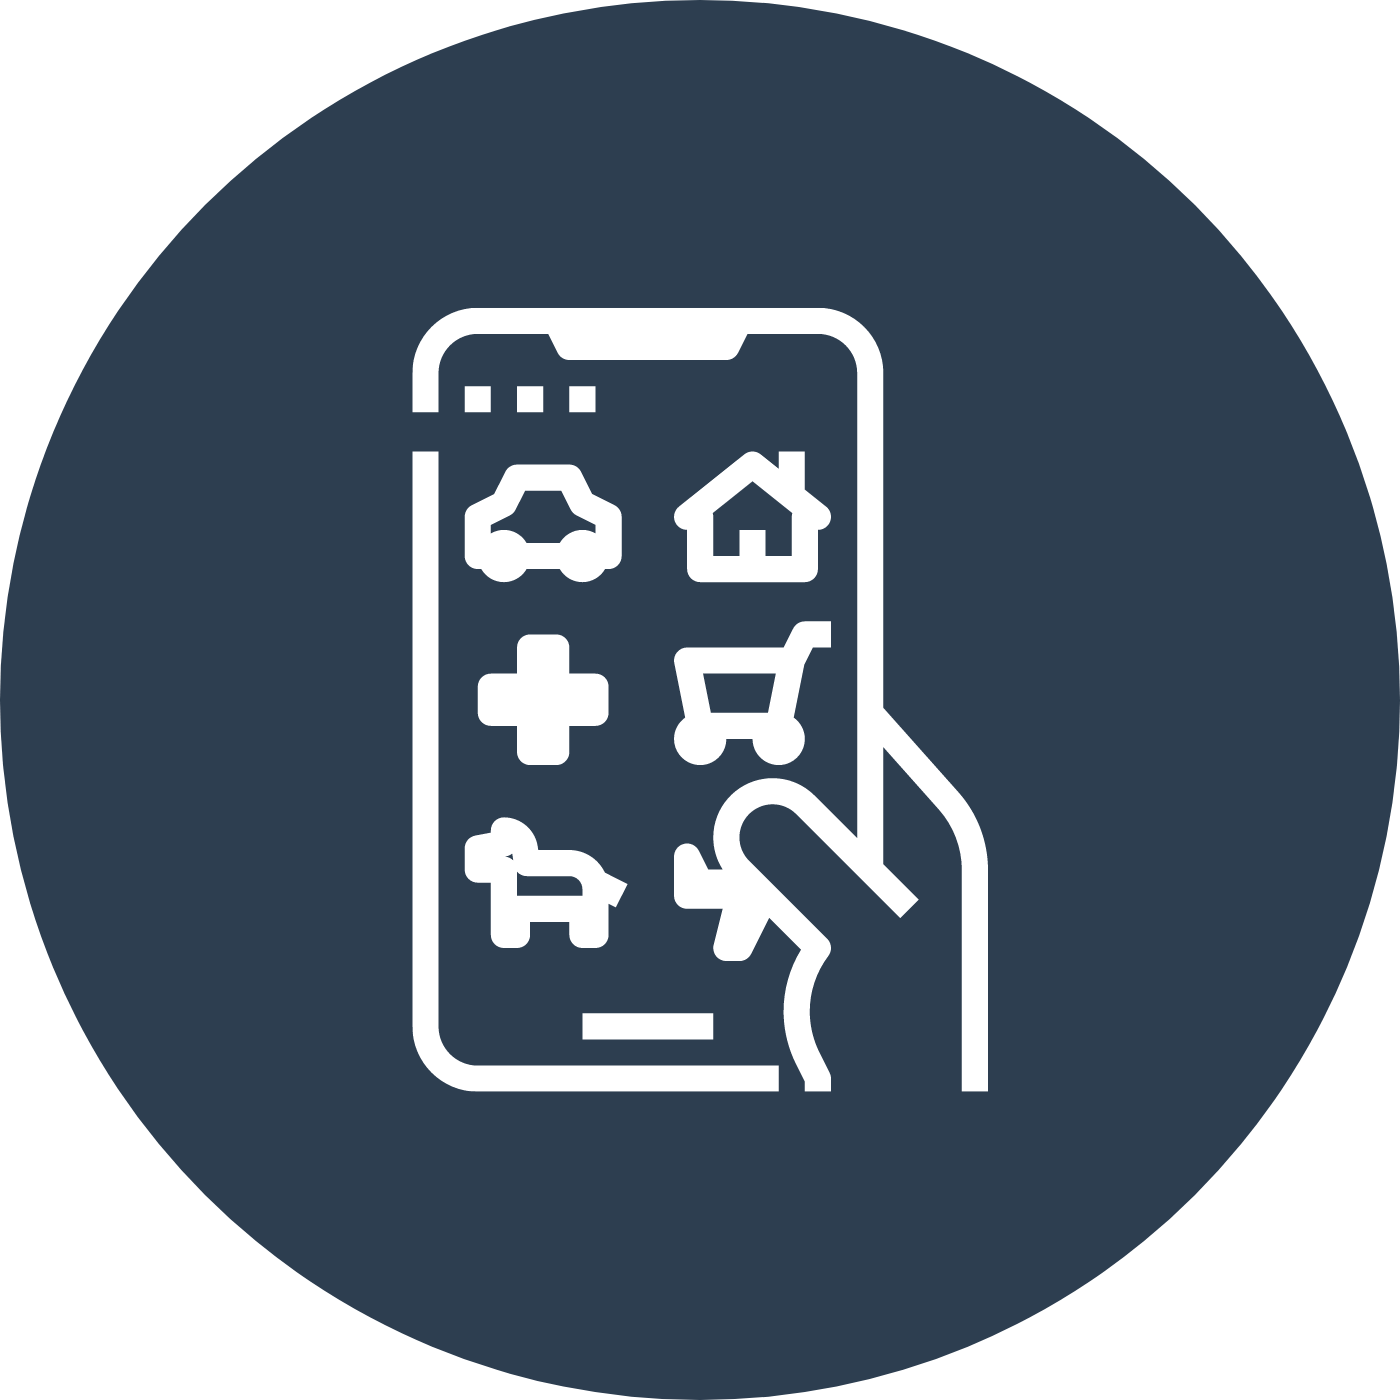 download safety apps icon